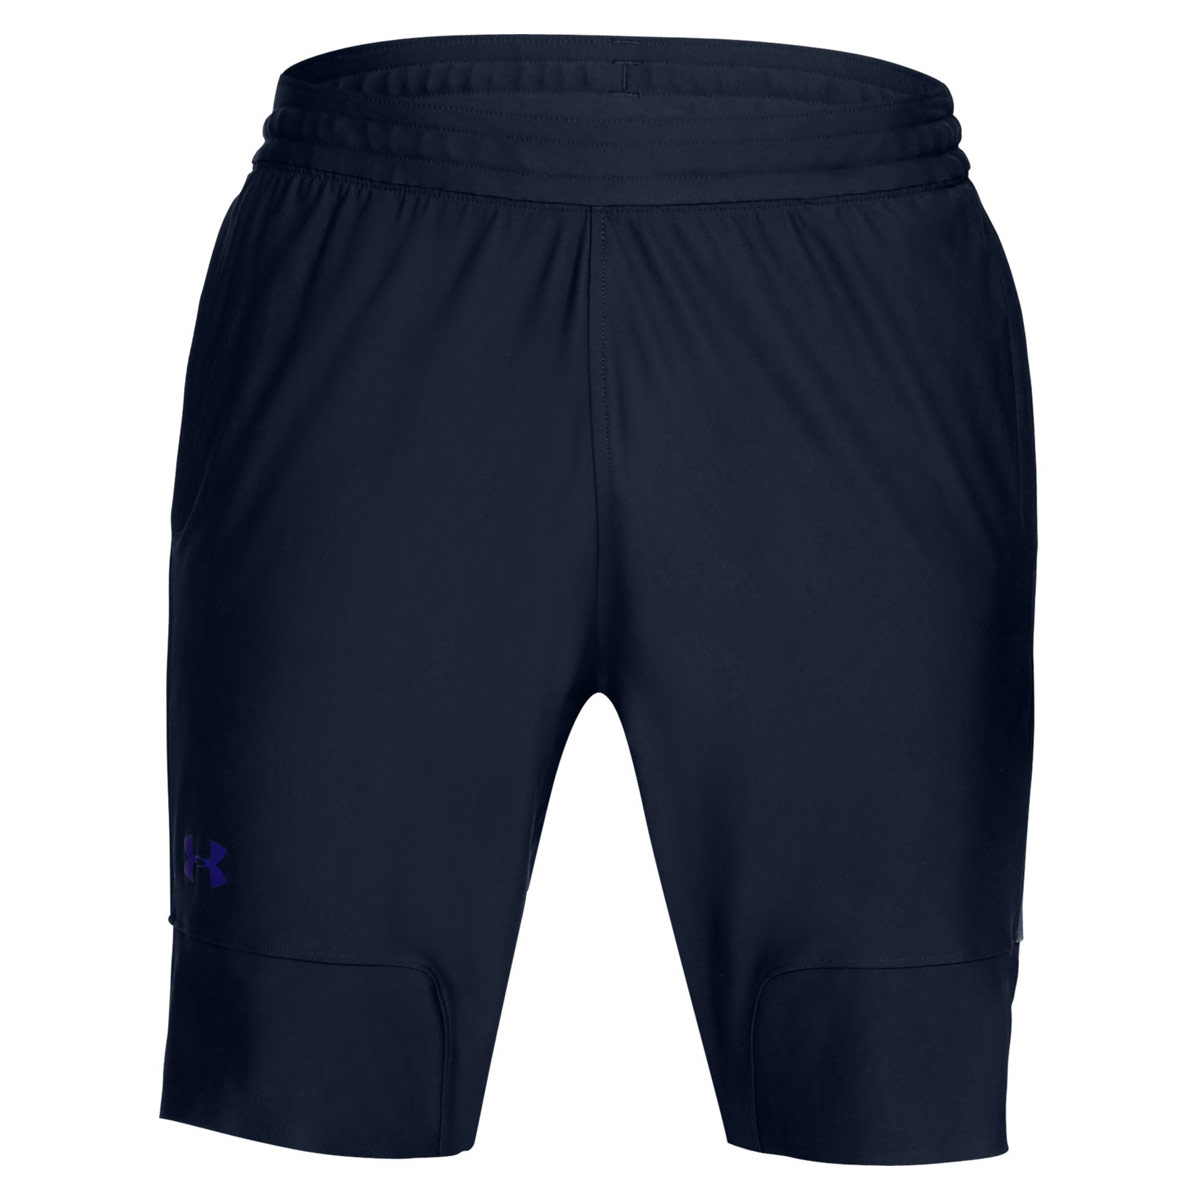 f2c54489e Under Armour Threadborne Vanish Ftd Short - Running trousers for Men - Blue  | 21RUN